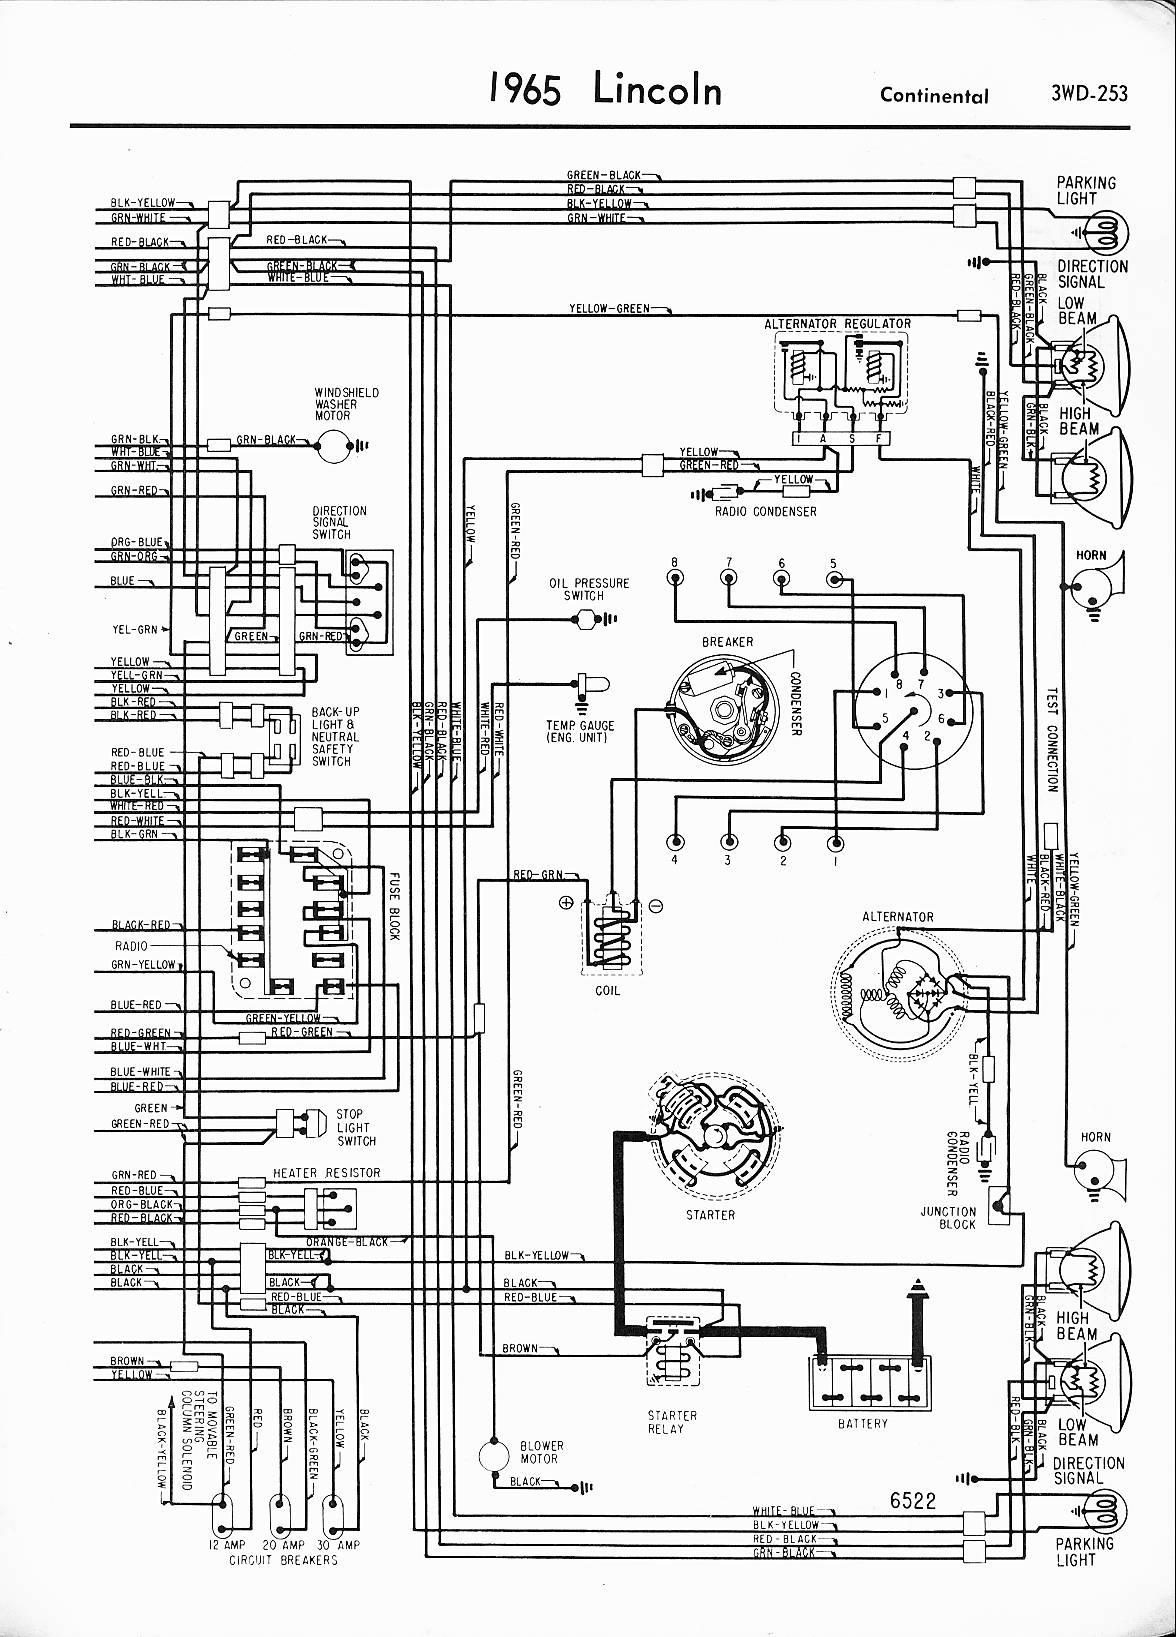 1969 Camaro Headlight Vacuum Diagram Trusted Wiring Diagrams Fuse Box Further Gt Circuits 1971 Lincoln Continental Post Connectors Headlights Heading Glass